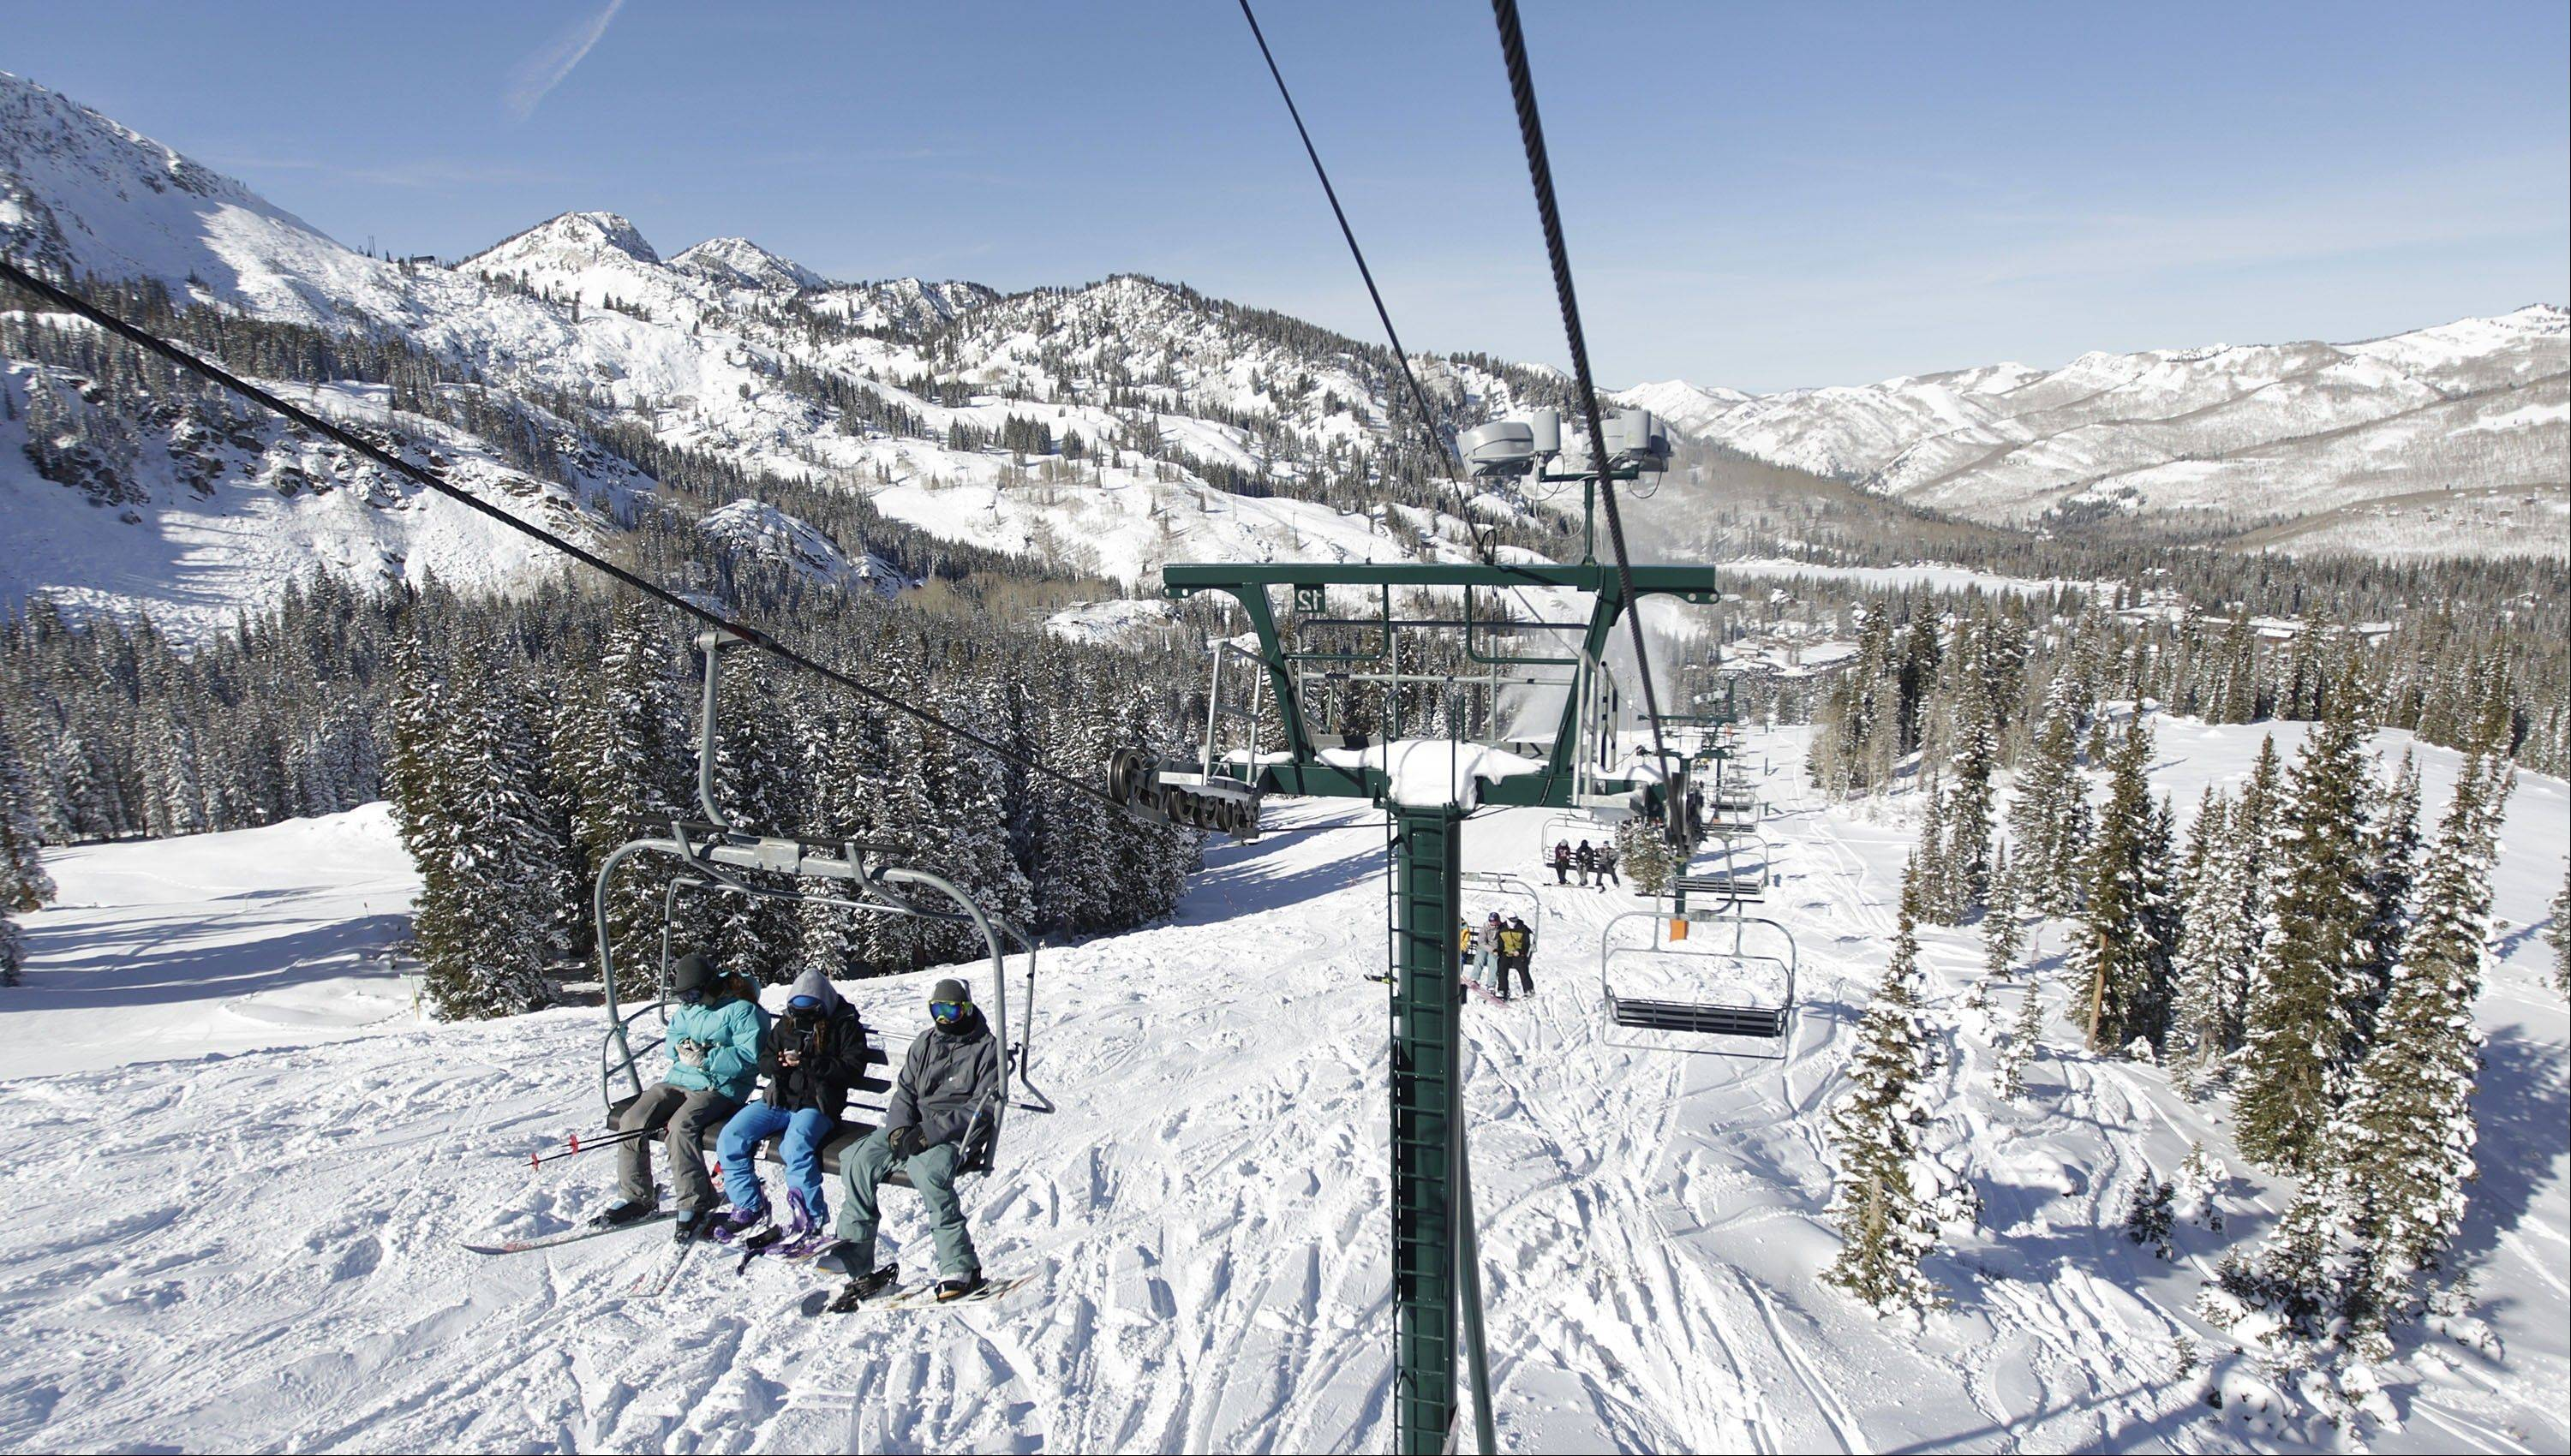 The Brighton Ski Resort is in the middle of the Wasatch Range's seven resorts.